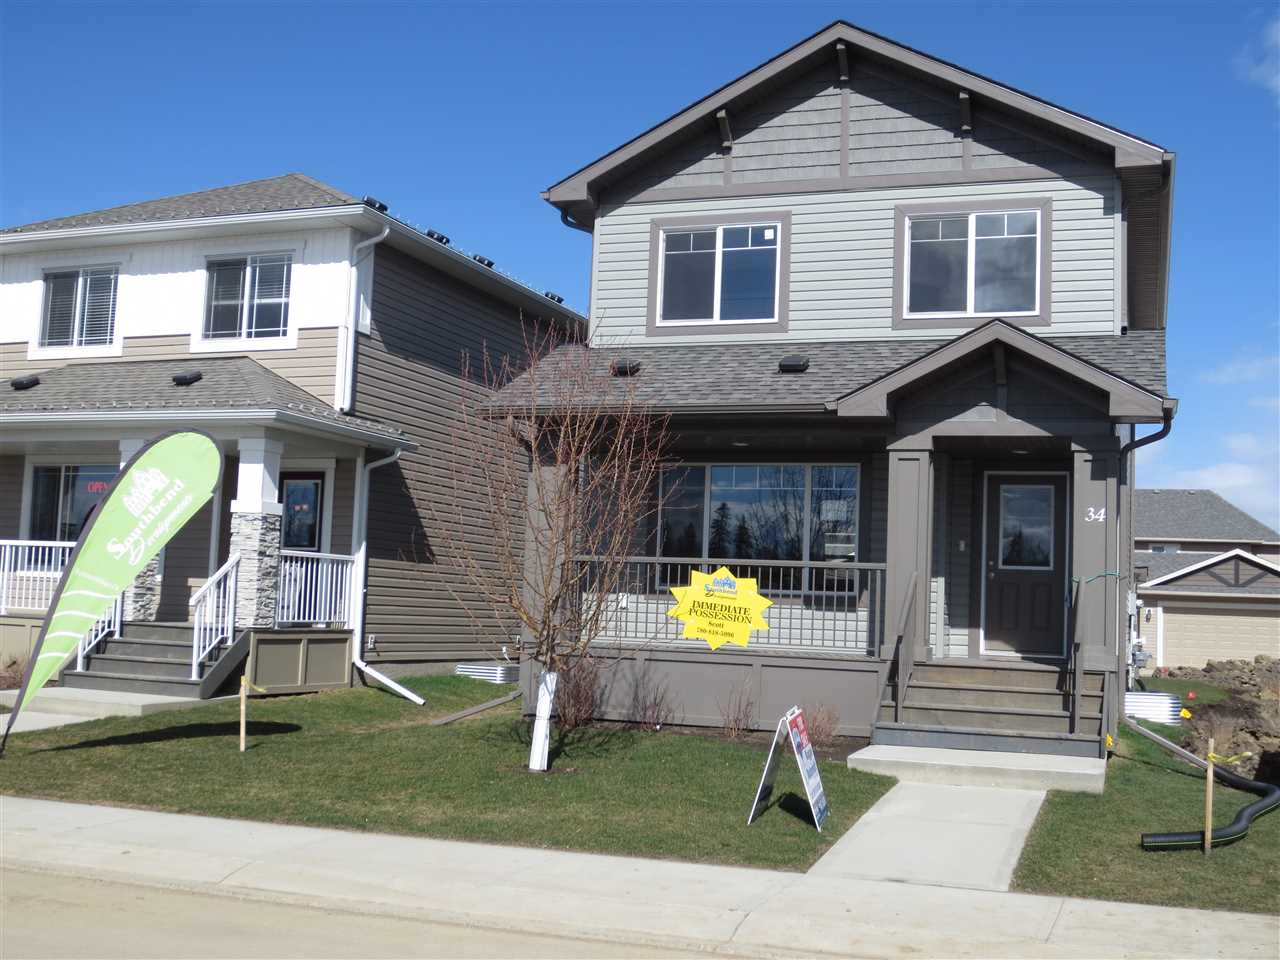 Main Photo: 34 HOPE Common: Spruce Grove House for sale : MLS(r) # E4062102